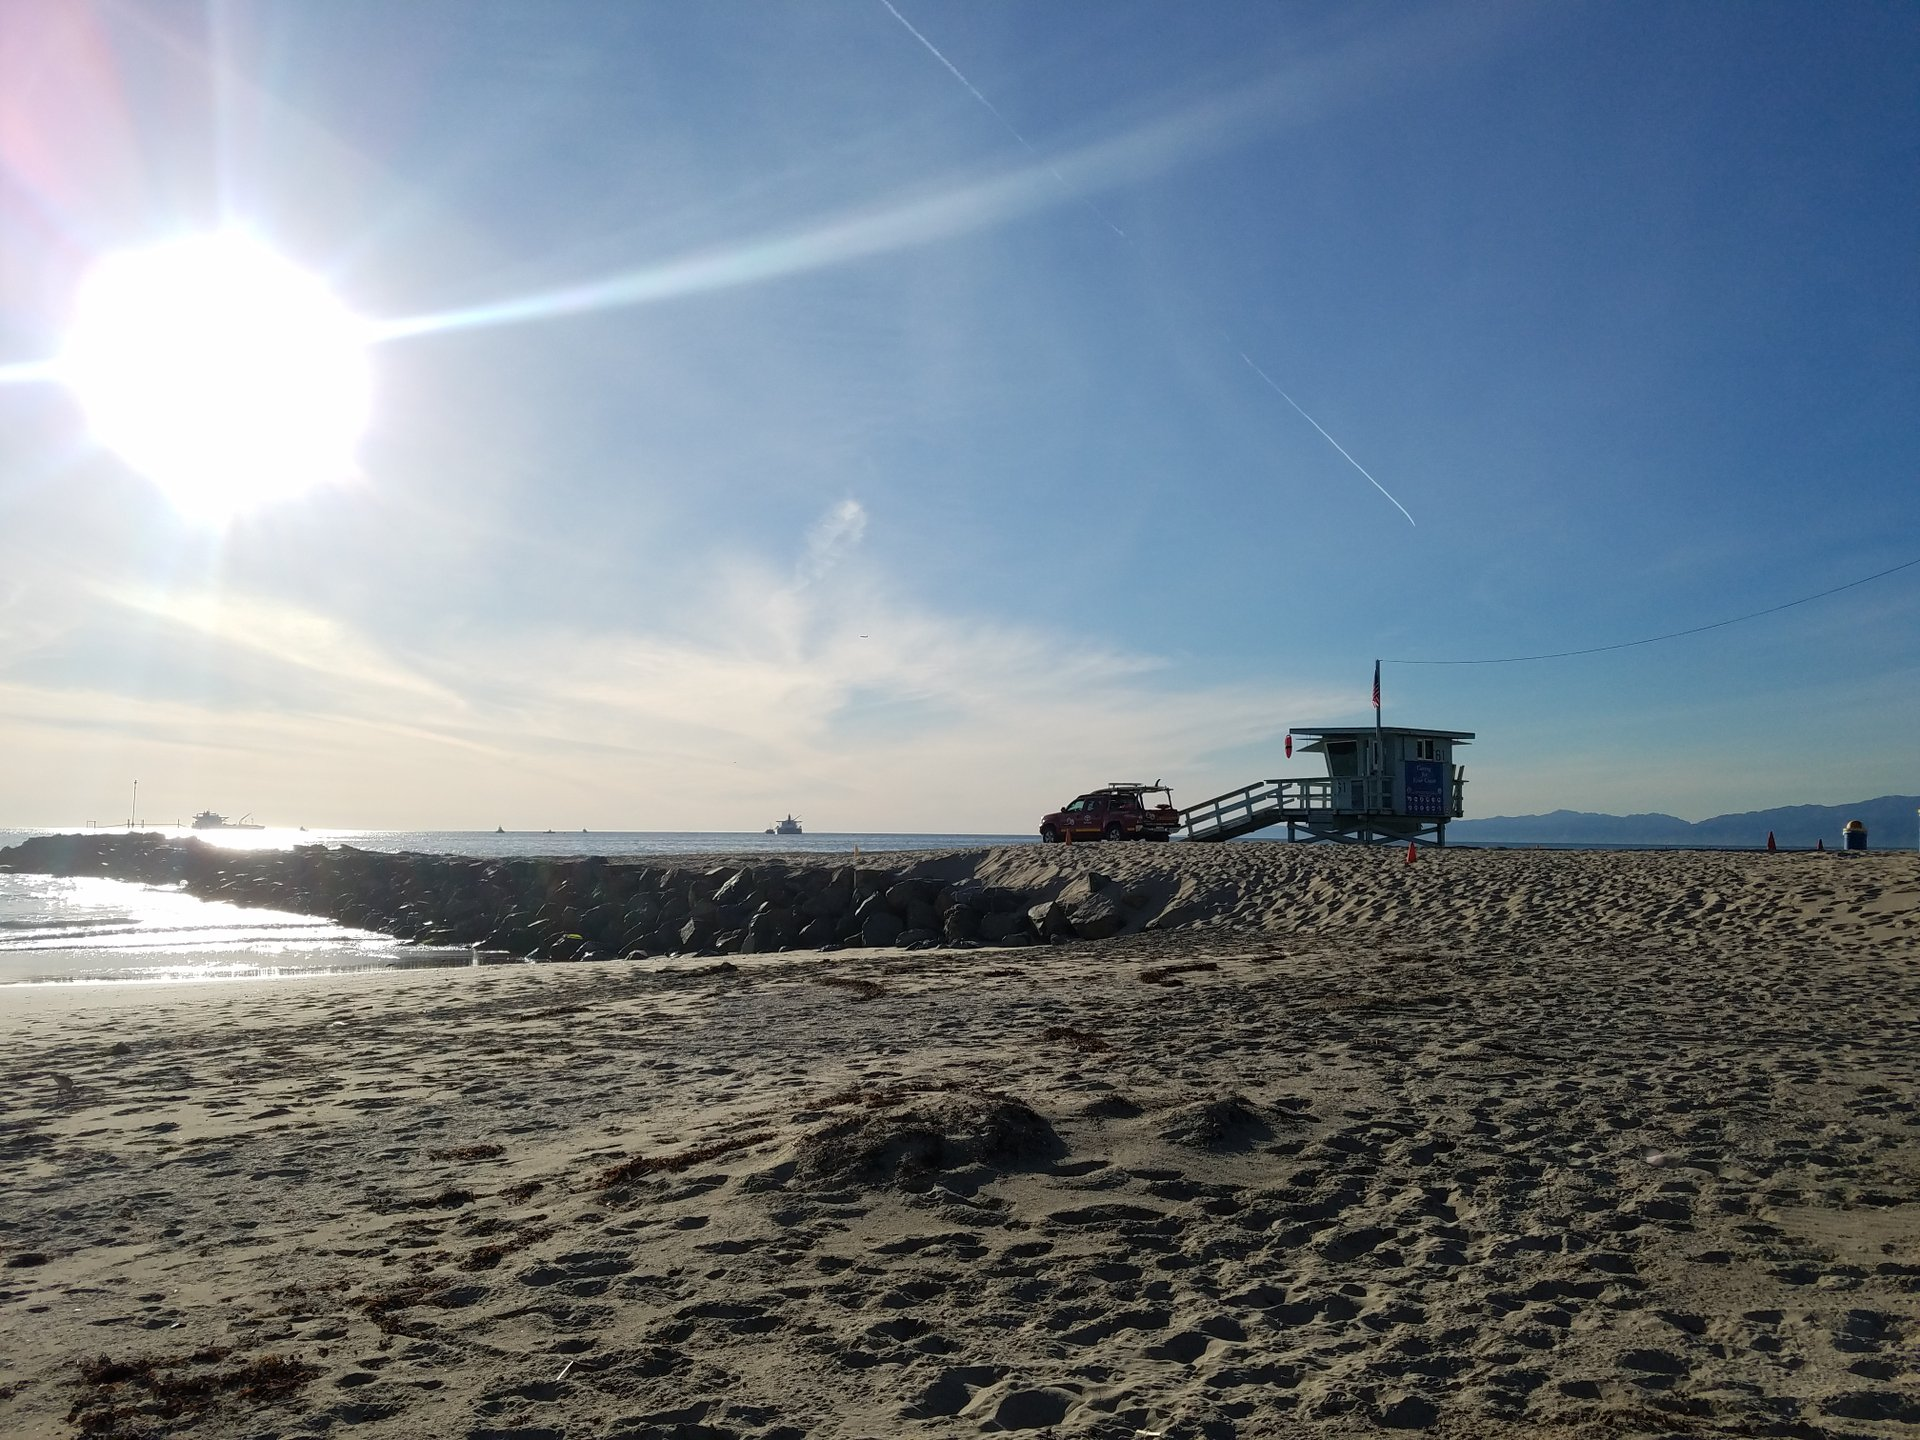 A Tipon's photo of Manhattan Beach